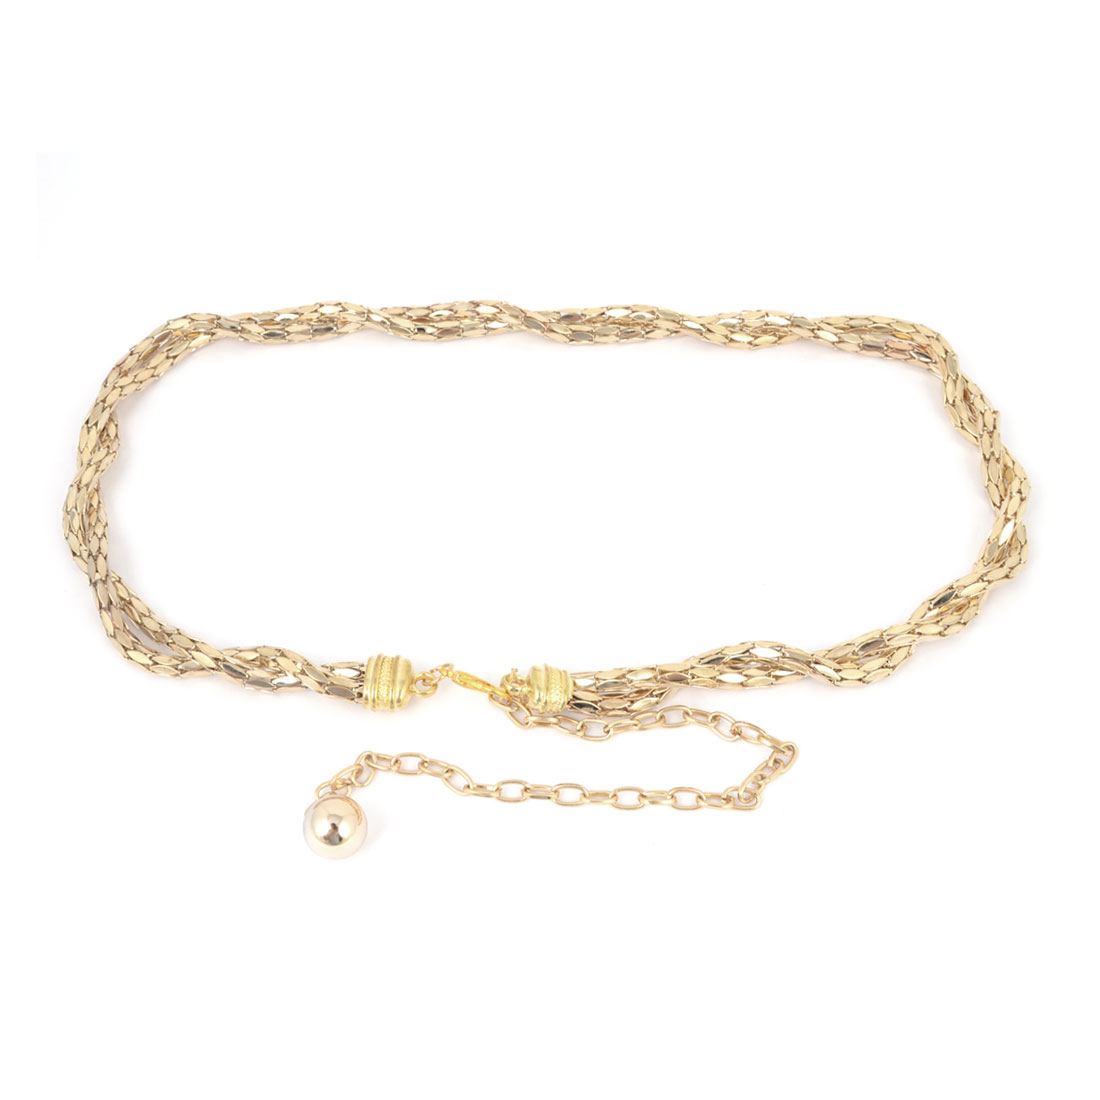 Ladies Lobster Clasp Glittery Gold Tone Adjustable Metal Waist Chain Belt